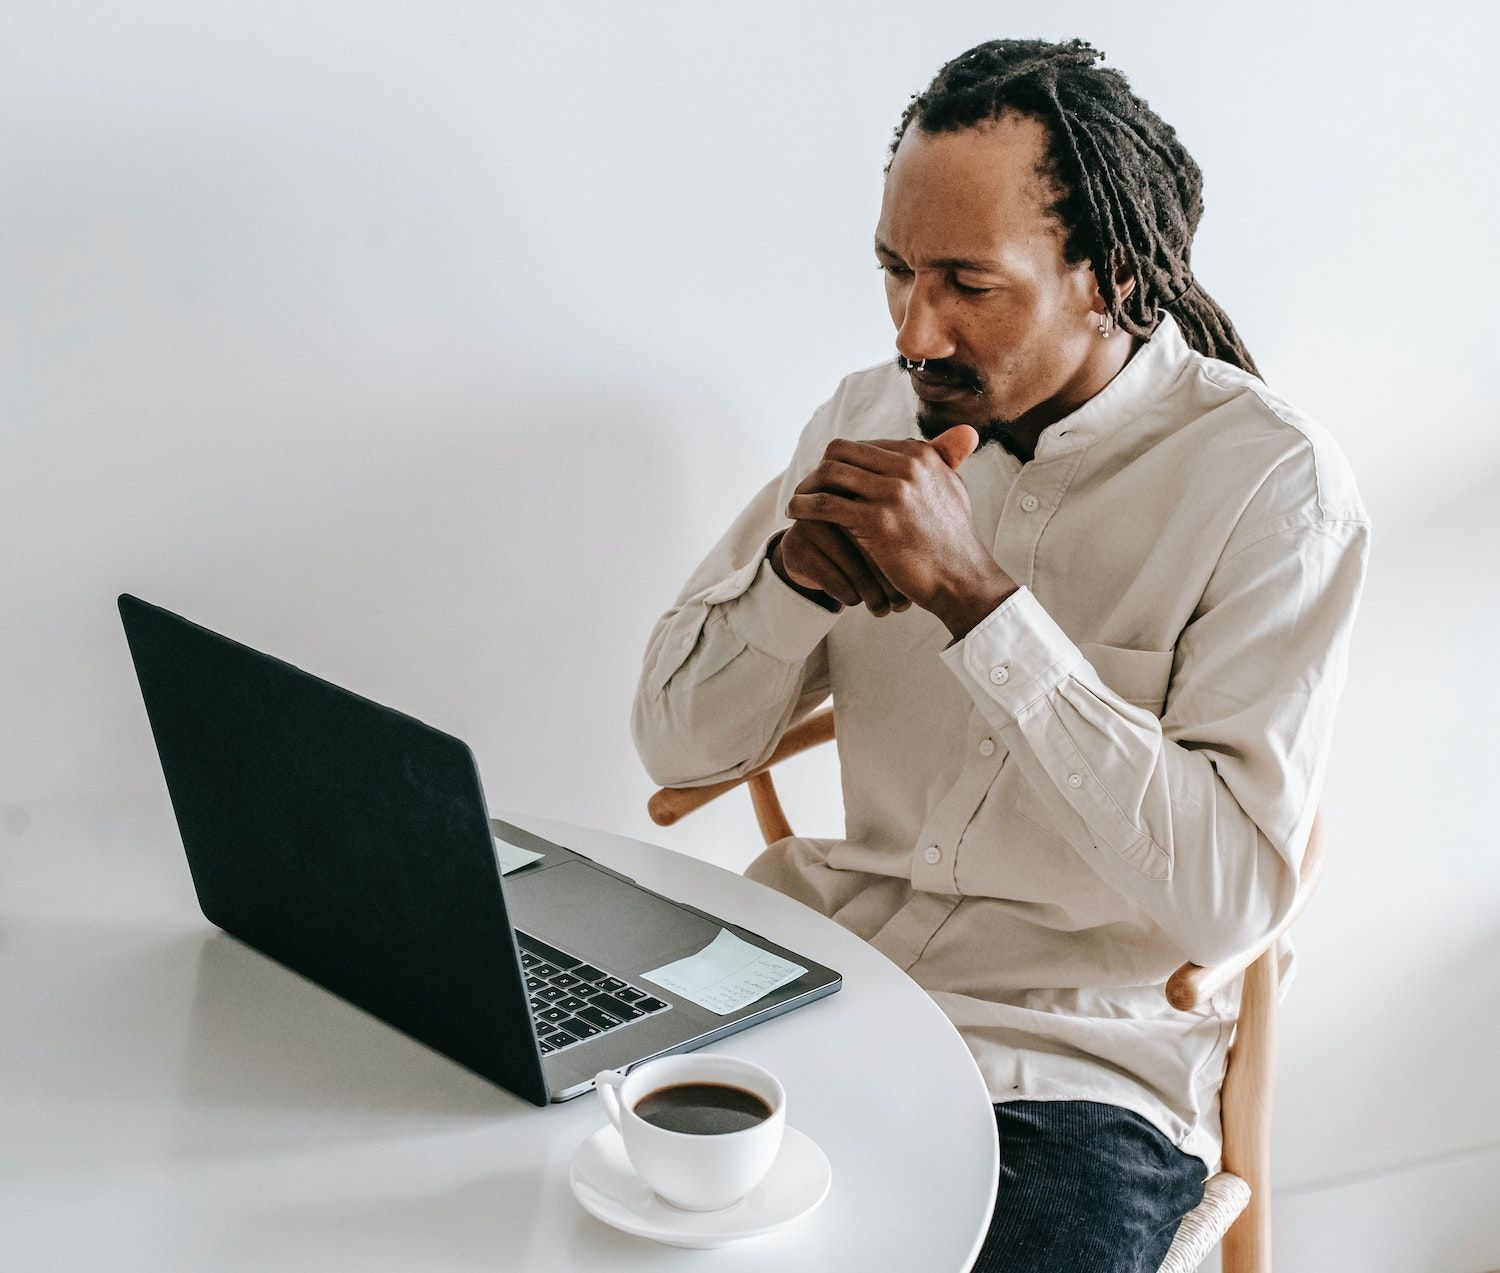 Trying to connect - NHS online therapy not for everyone